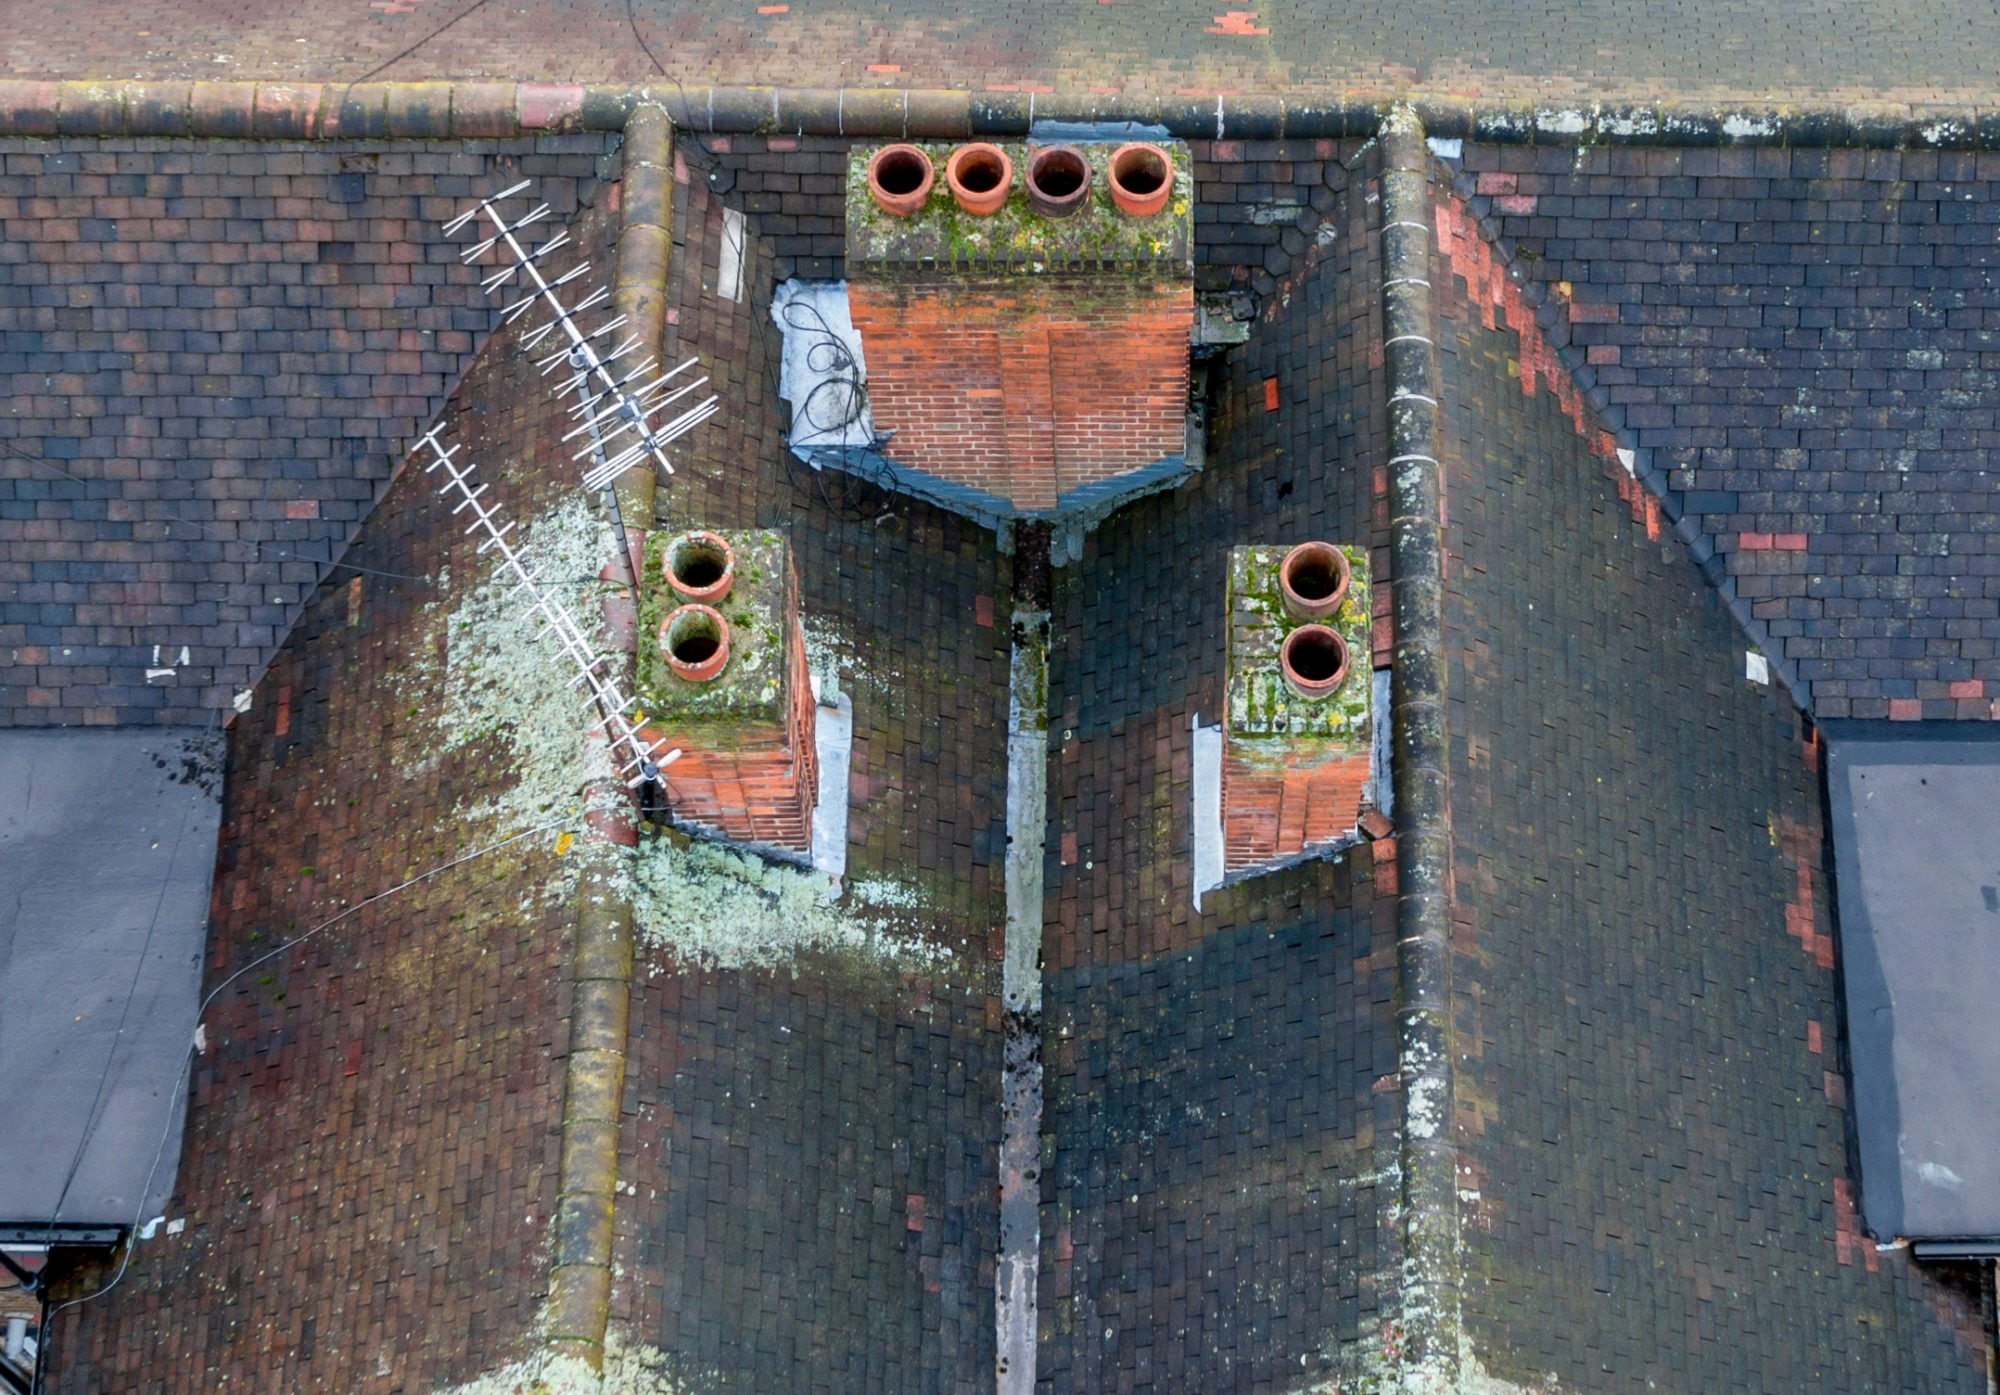 Aerial photography roof inspection of a London property using drones